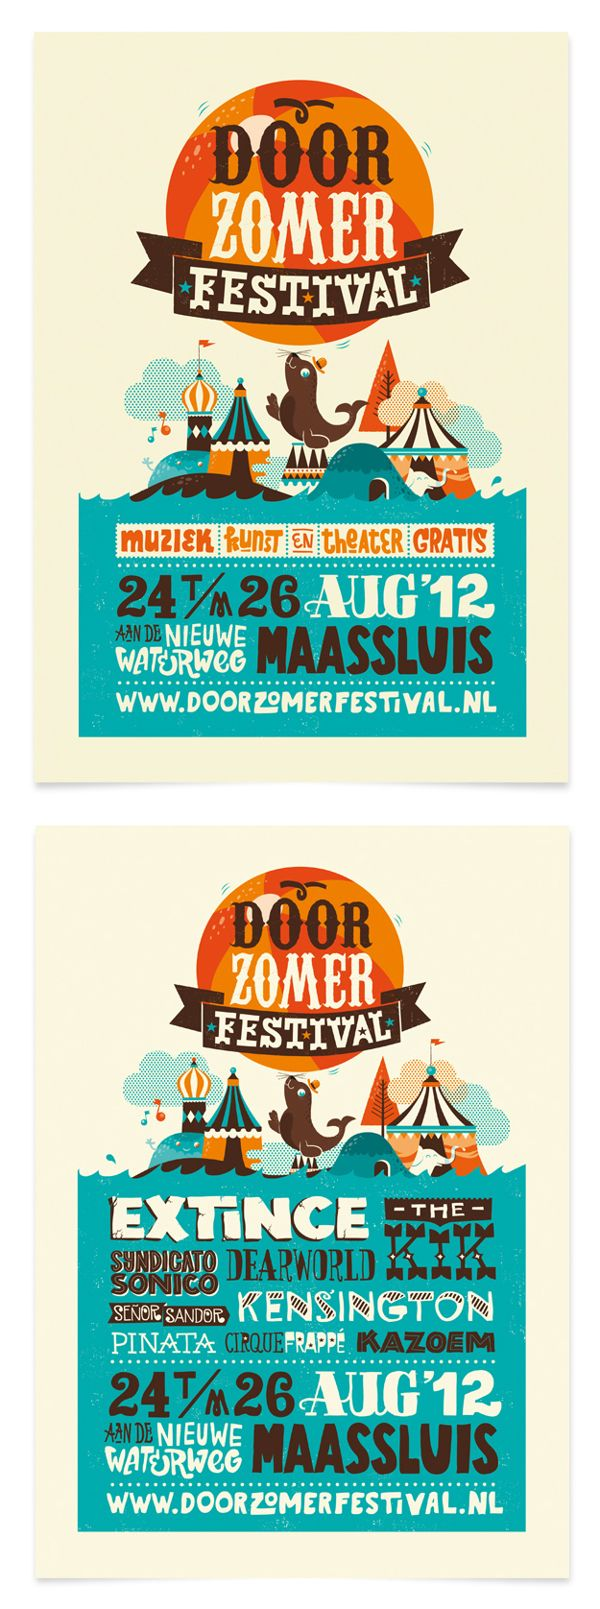 Doorzomer 2012 by Patswerk, via Behance